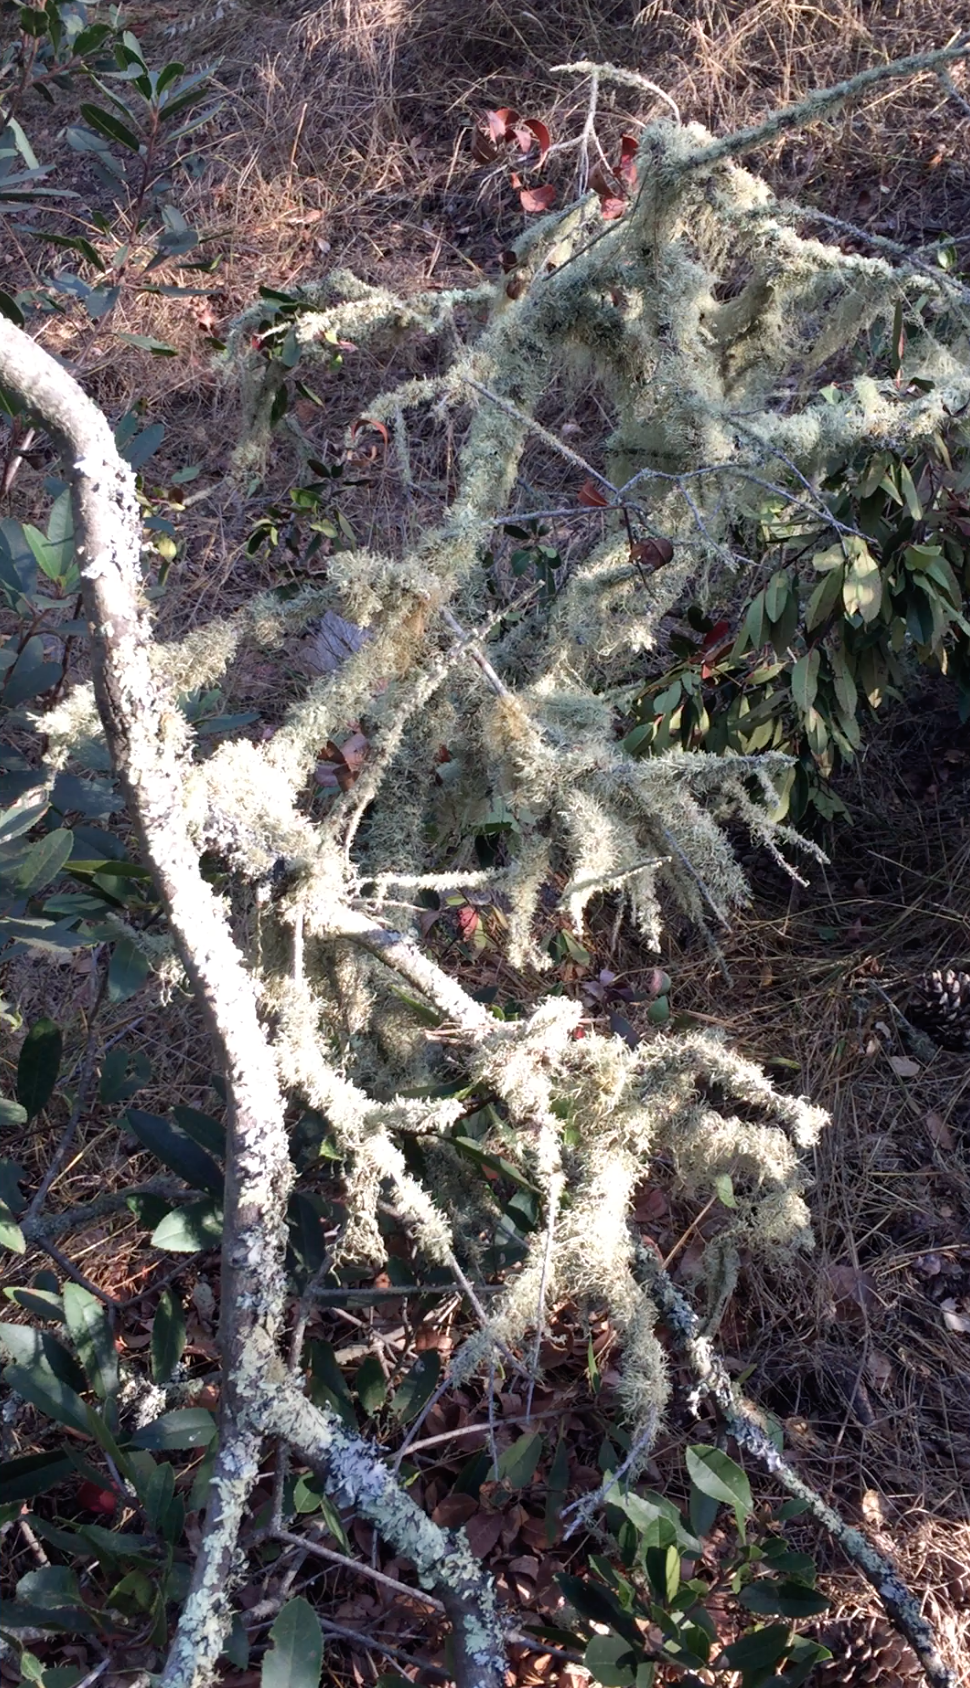 A branch saturated with Lichen